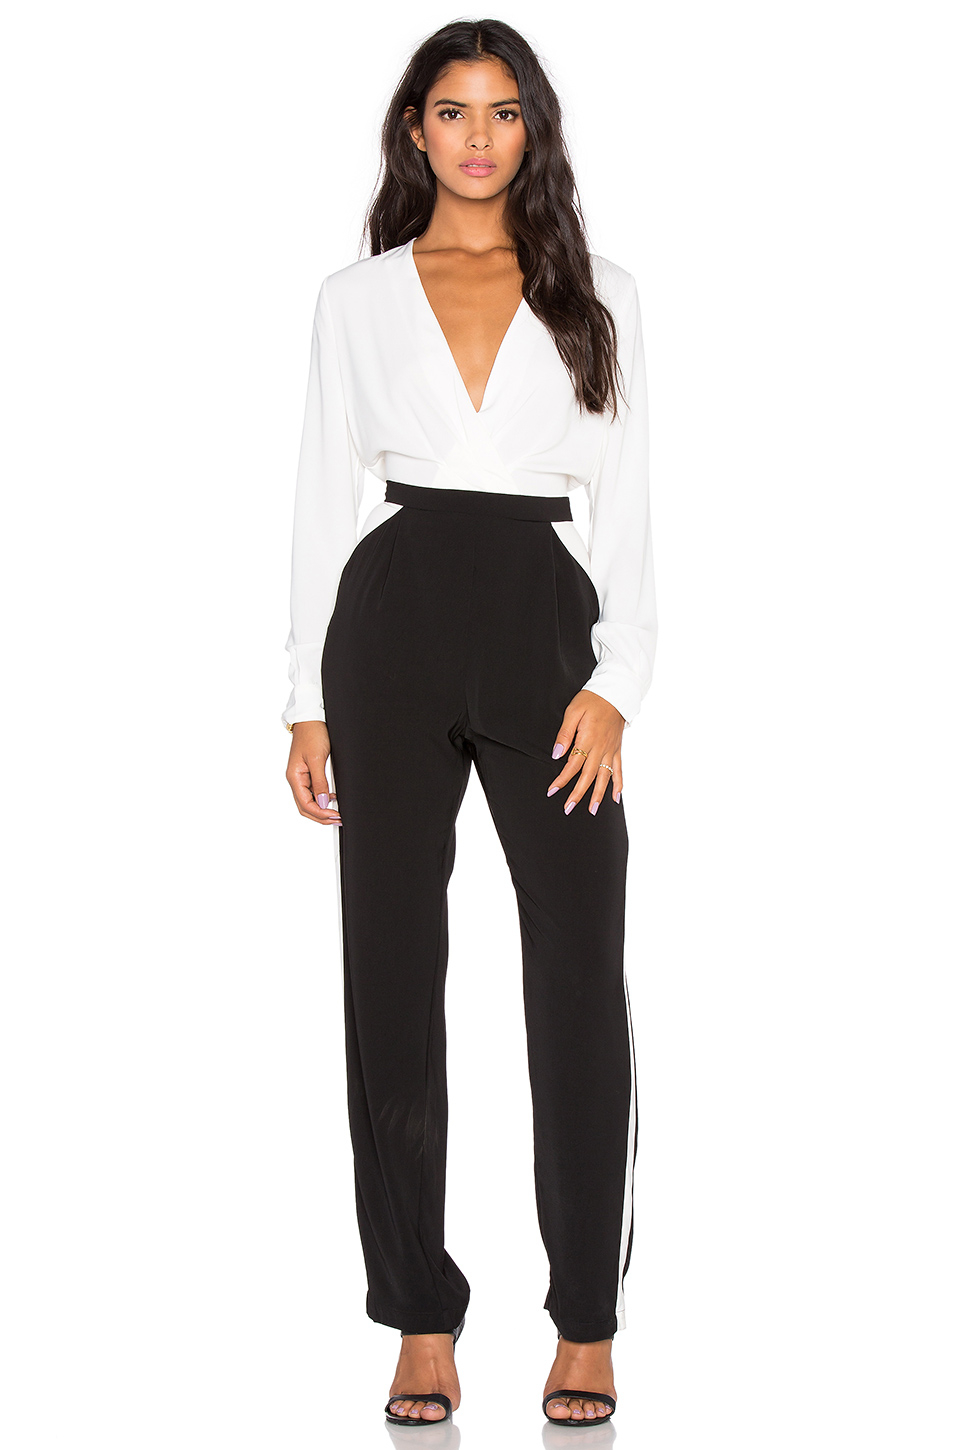 Shop for jumpsuits and rompers for women at kcyoo6565.gq Find a wide range of women's jumpsuit and romper styles from top brands. Free shipping and returns. Black Grey White Beige Brown Metallic Purple Blue Green Yellow Orange Pink Red Off-white. Show Price. Under $25 $